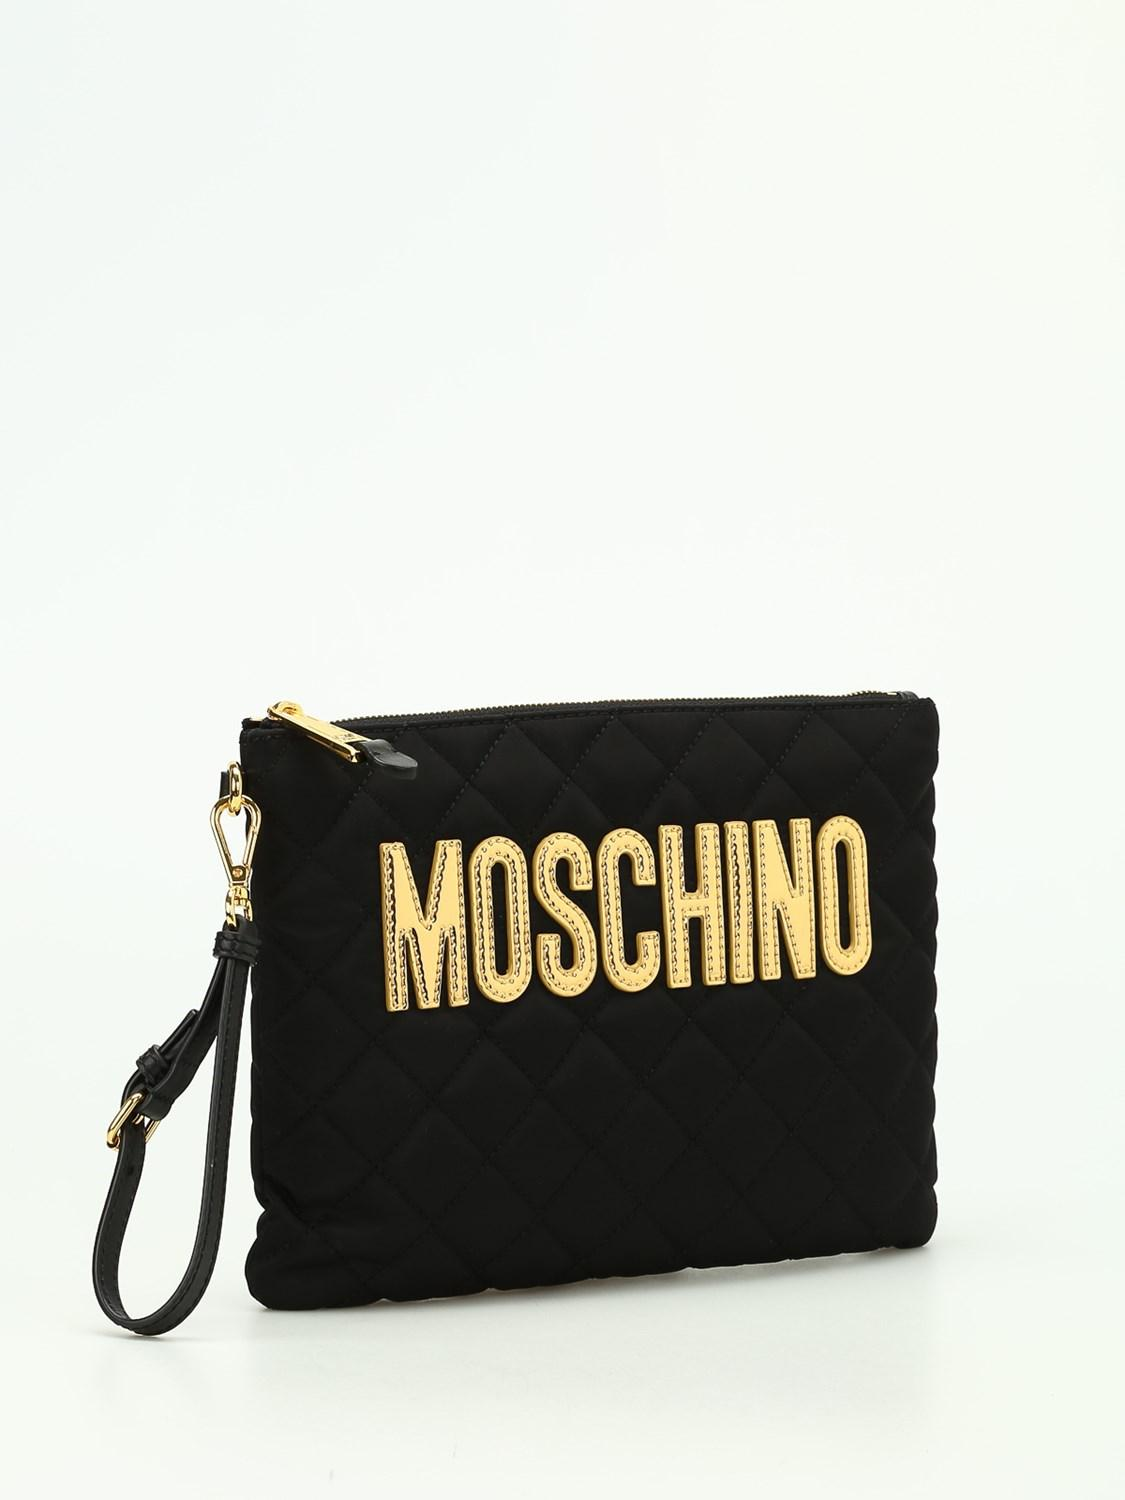 028e407f92 Lyst - Moschino Quilted Nylon Clutch in Black